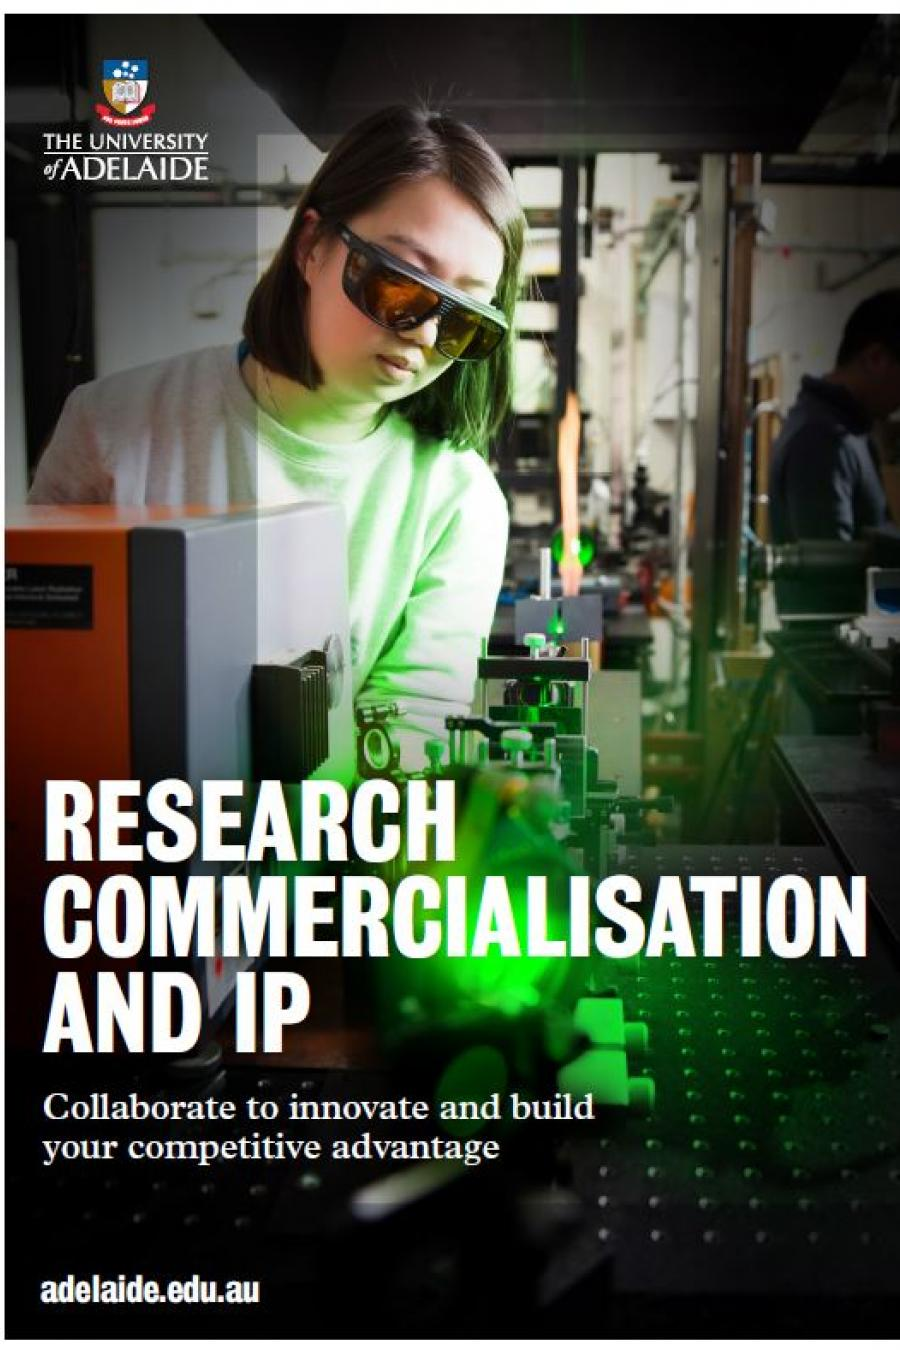 Research commercialisation brochure cover